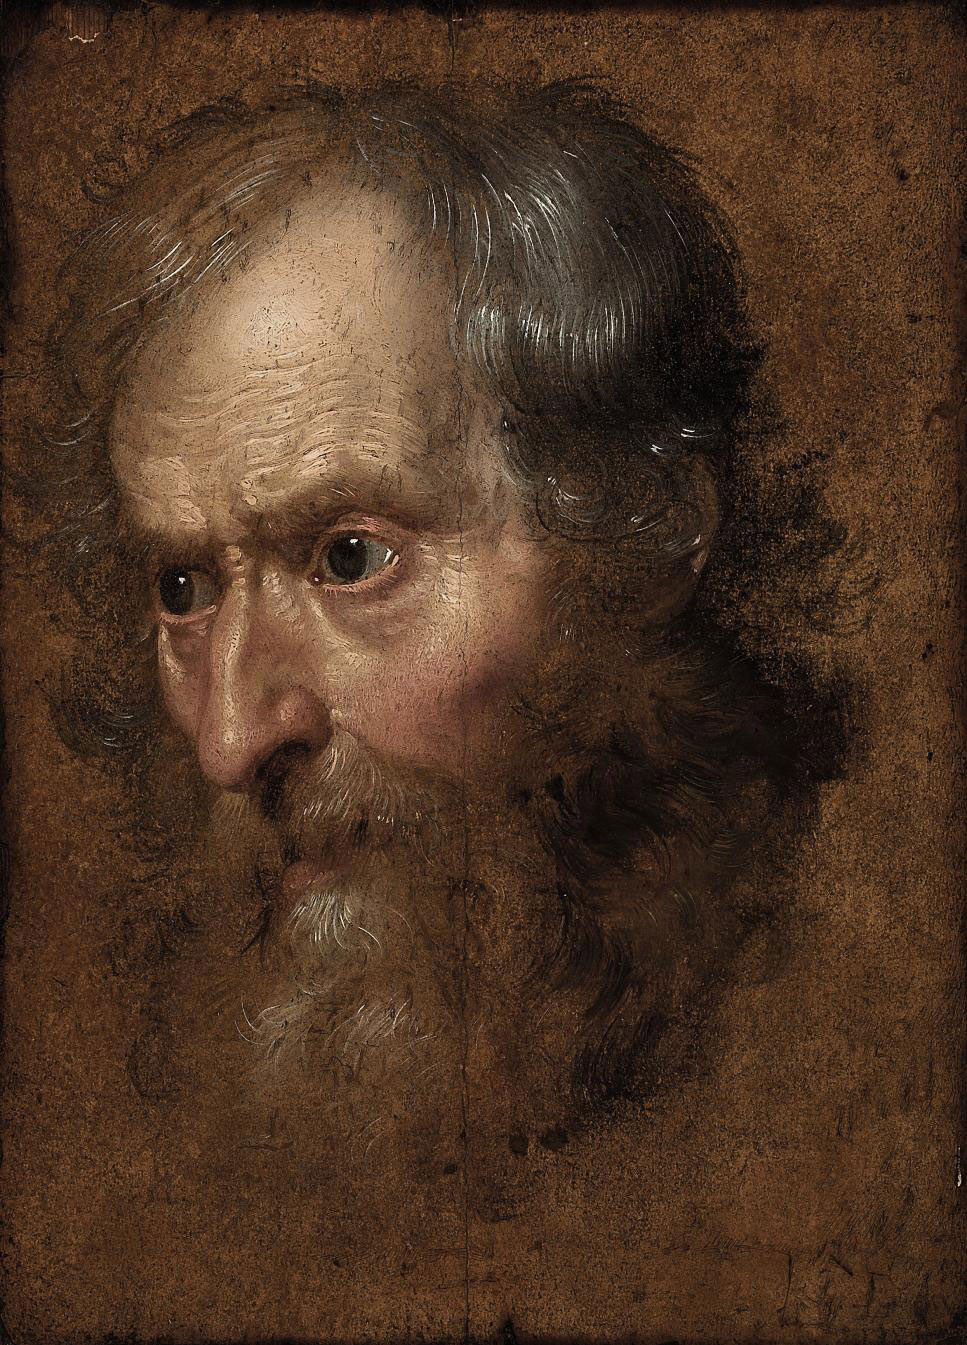 Study of the head of a man